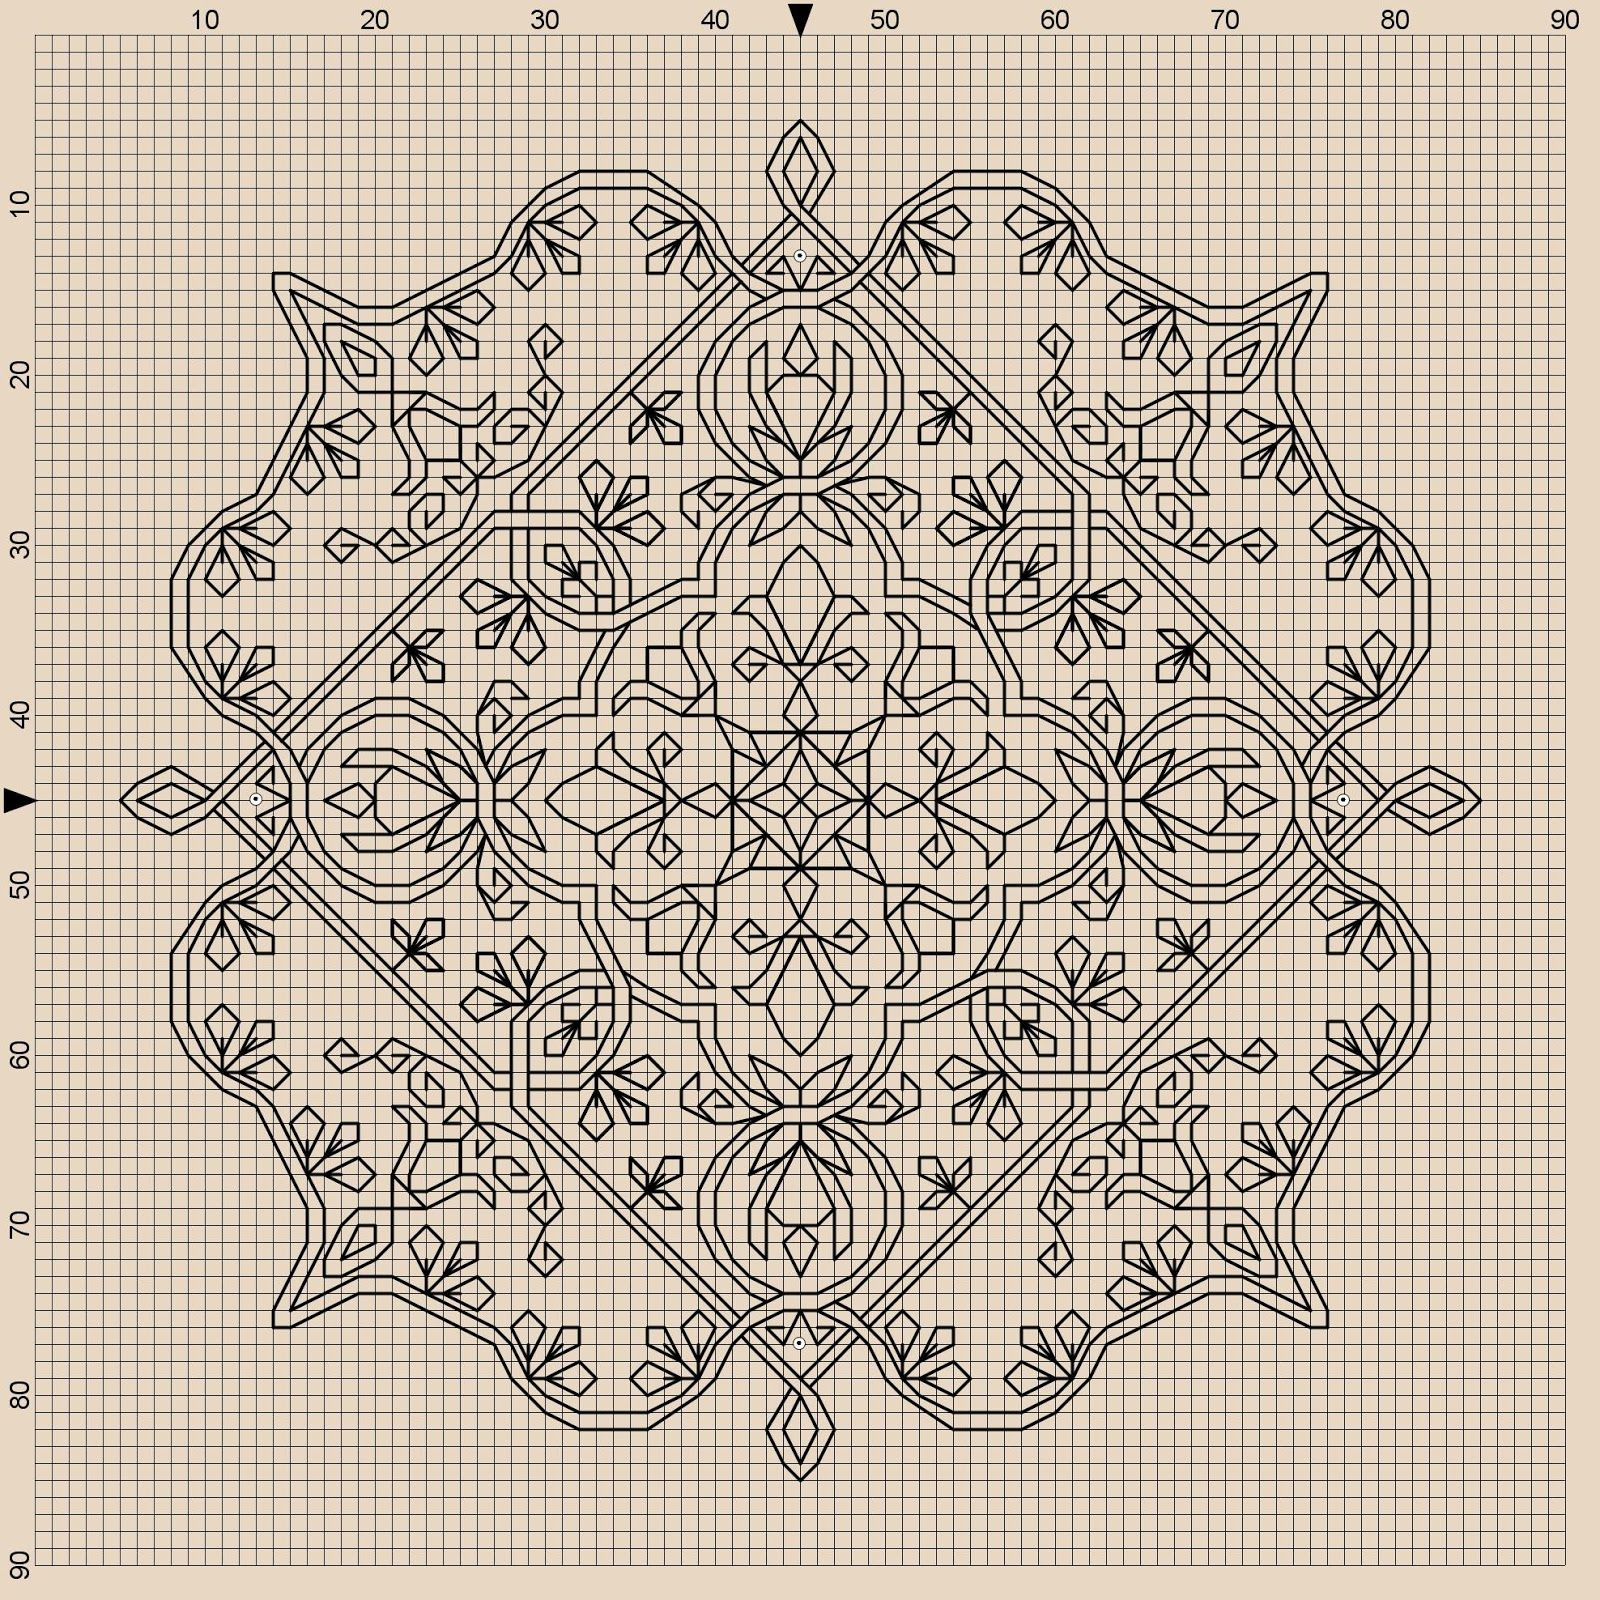 Byrds nest for peace for hope for you free blackwork and blackwork embroidery bankloansurffo Gallery